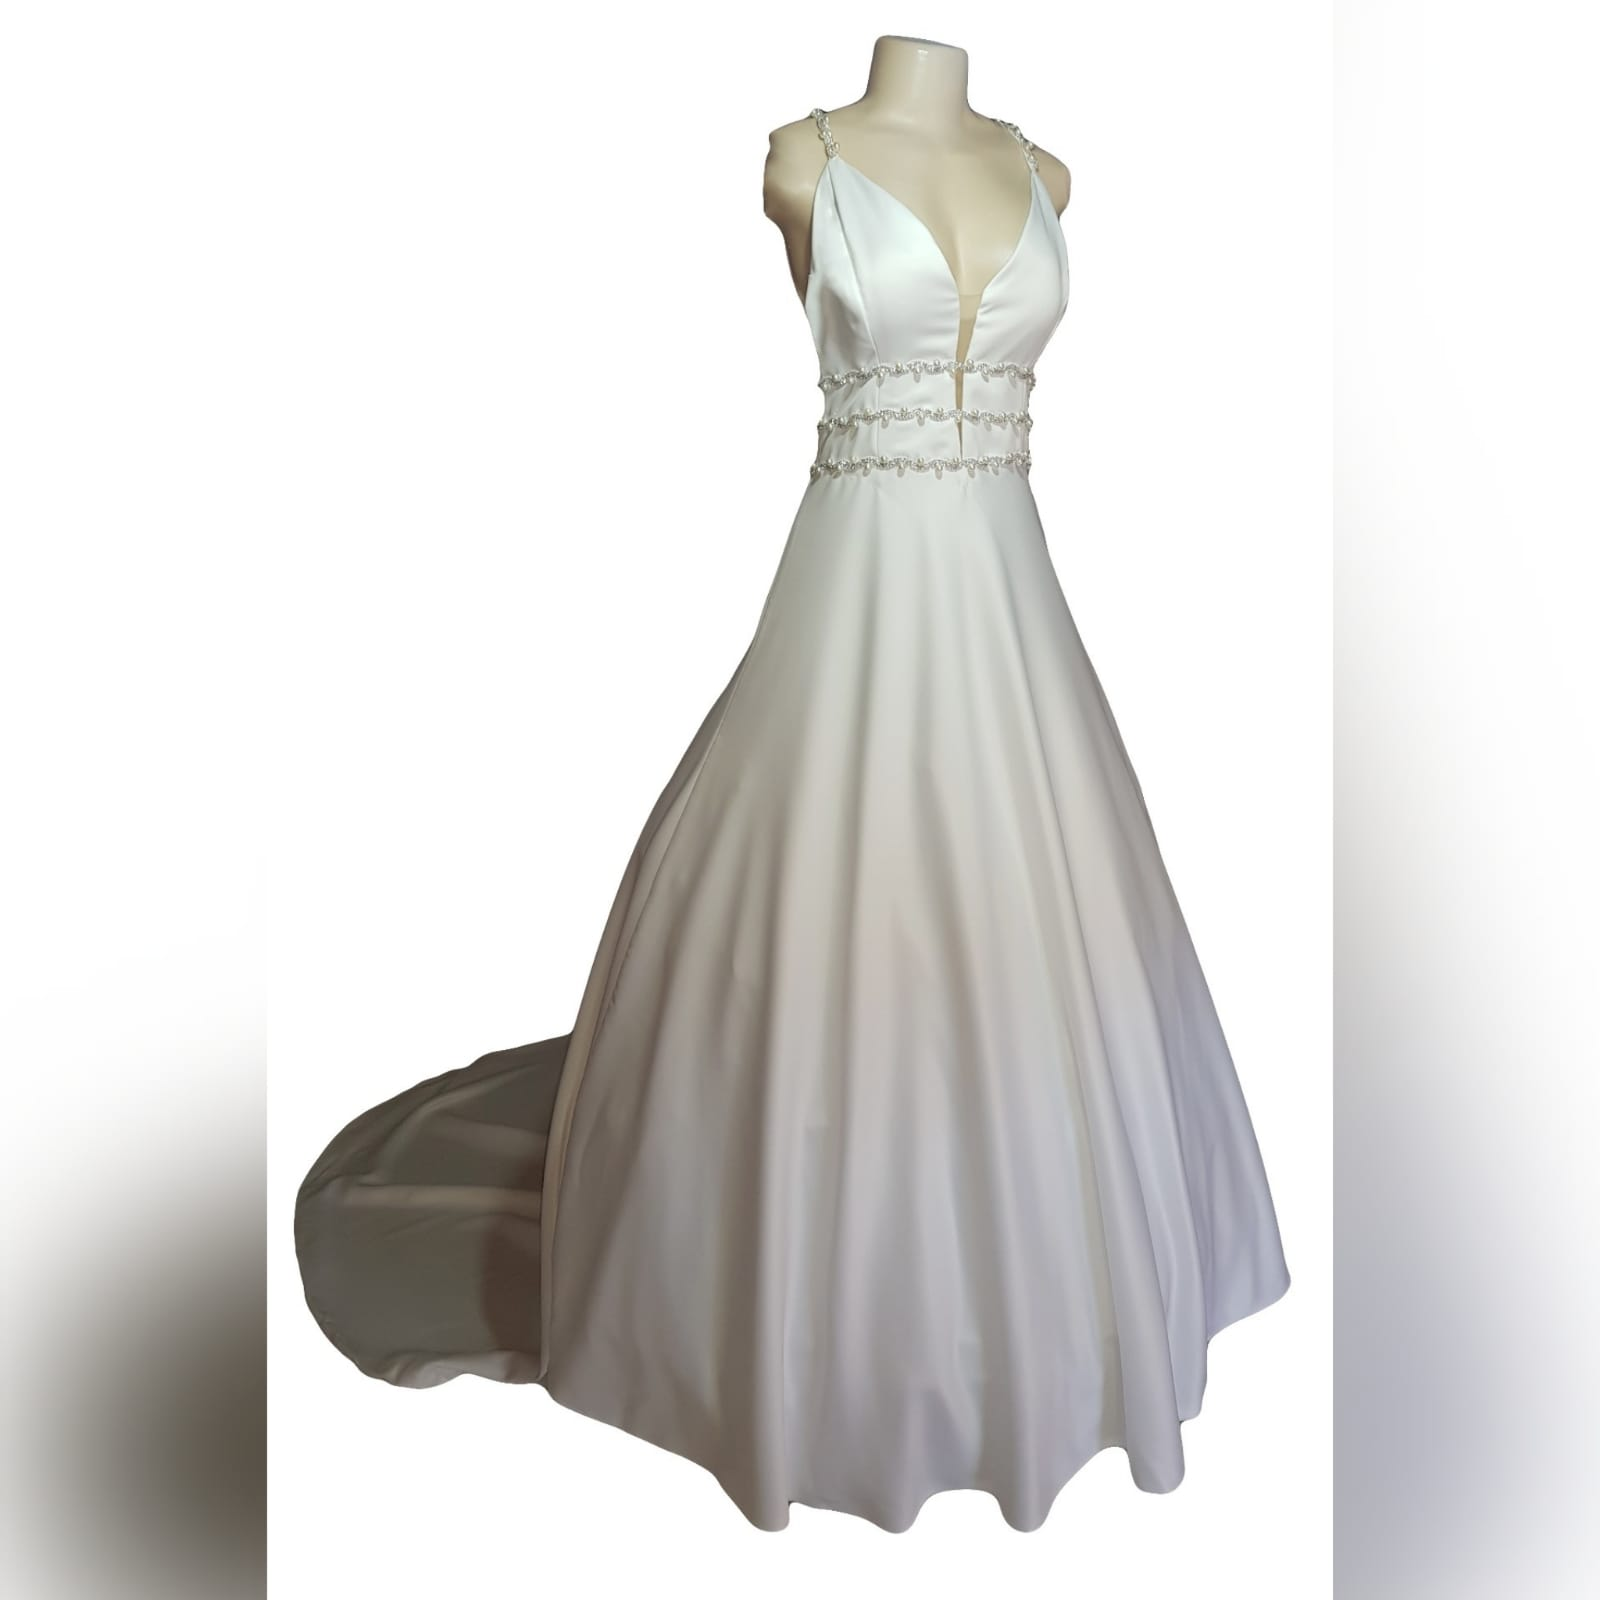 A line brides dress in a pearl satin fabric 19 this elegant wedding dress was designed and made for a wedding in brazilan a-line brides dress in a pearl satin fabric, with an illusion deep neckline and v open back. Detailed with diamante, pearls and buttons. A wide train that hooks up. And a brazilian traditional embroidered inside hem with the bridesmaid's names.